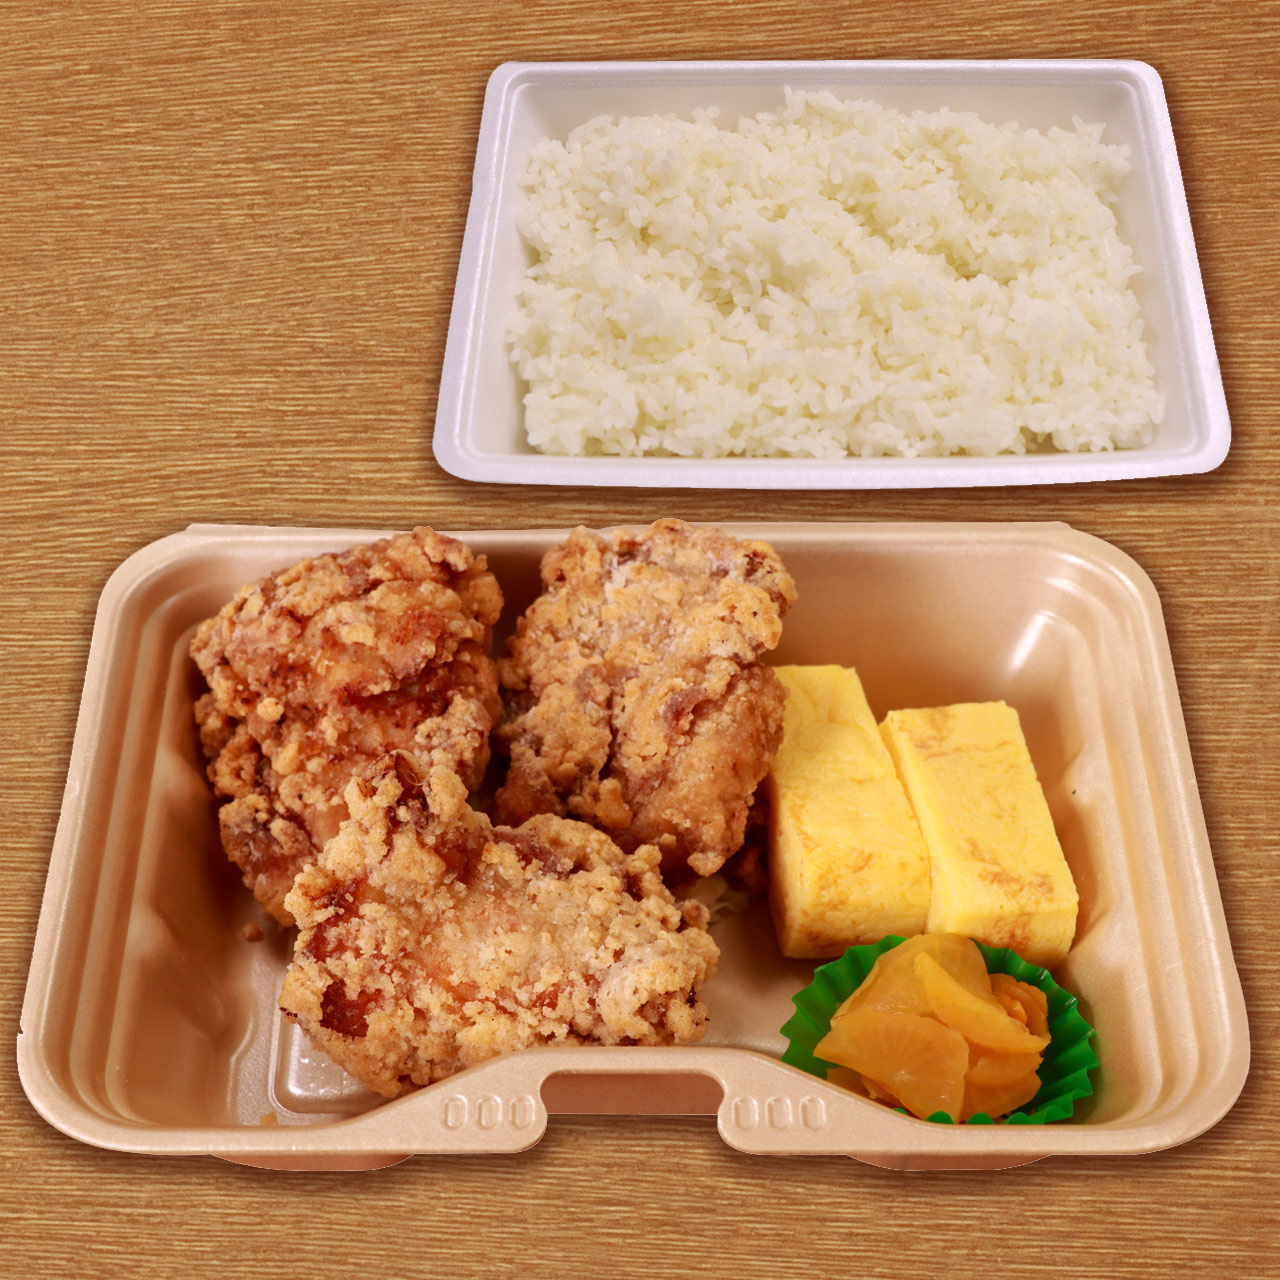 F-1107】 BIGからあげ(3ヶ)&玉子焼き弁当 Juicy Big Fried Chicken & Fluffy Rolled Omelette Meal Box (3 pieces of fried chicken)